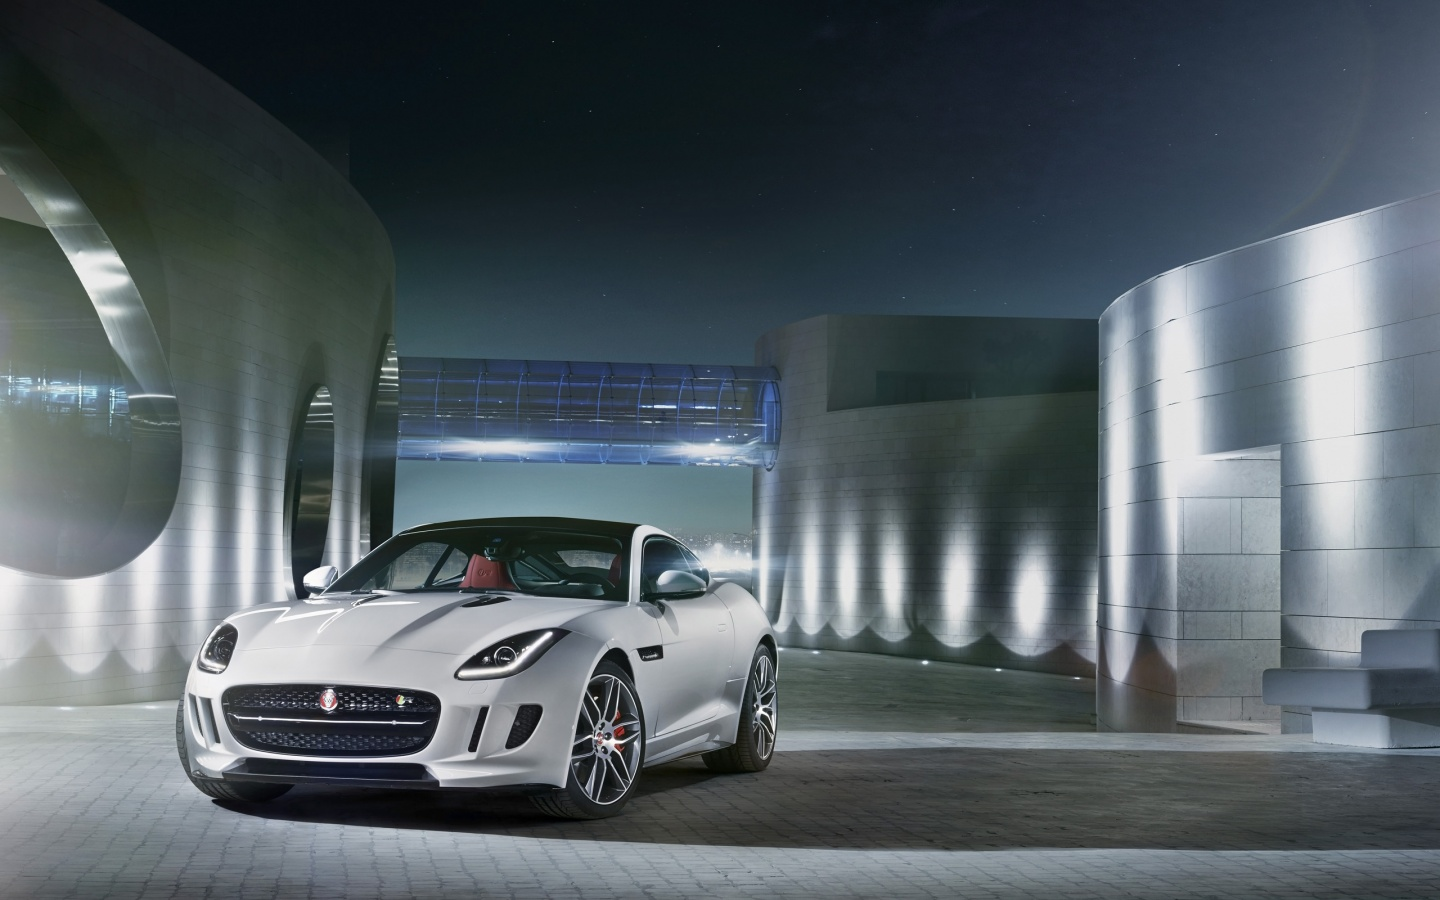 1440x900 2014 Jaguar F-Type R Coupe Polaris White Static Front Angle